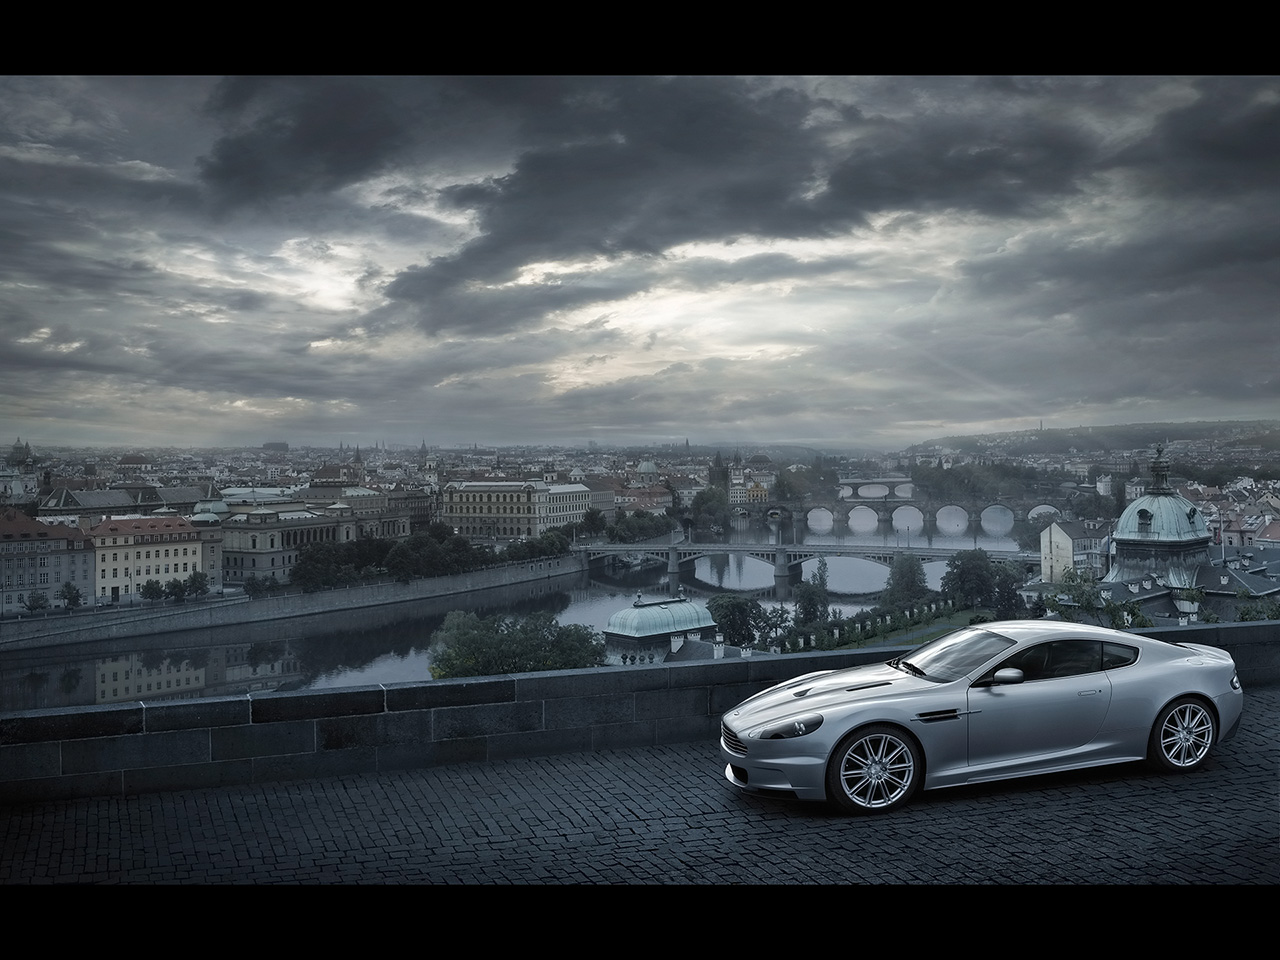 Share Your Pictures Of Cars You Love - Page 24 ASTON%2BMARTIN%2BDBS%2B2008%2BImage